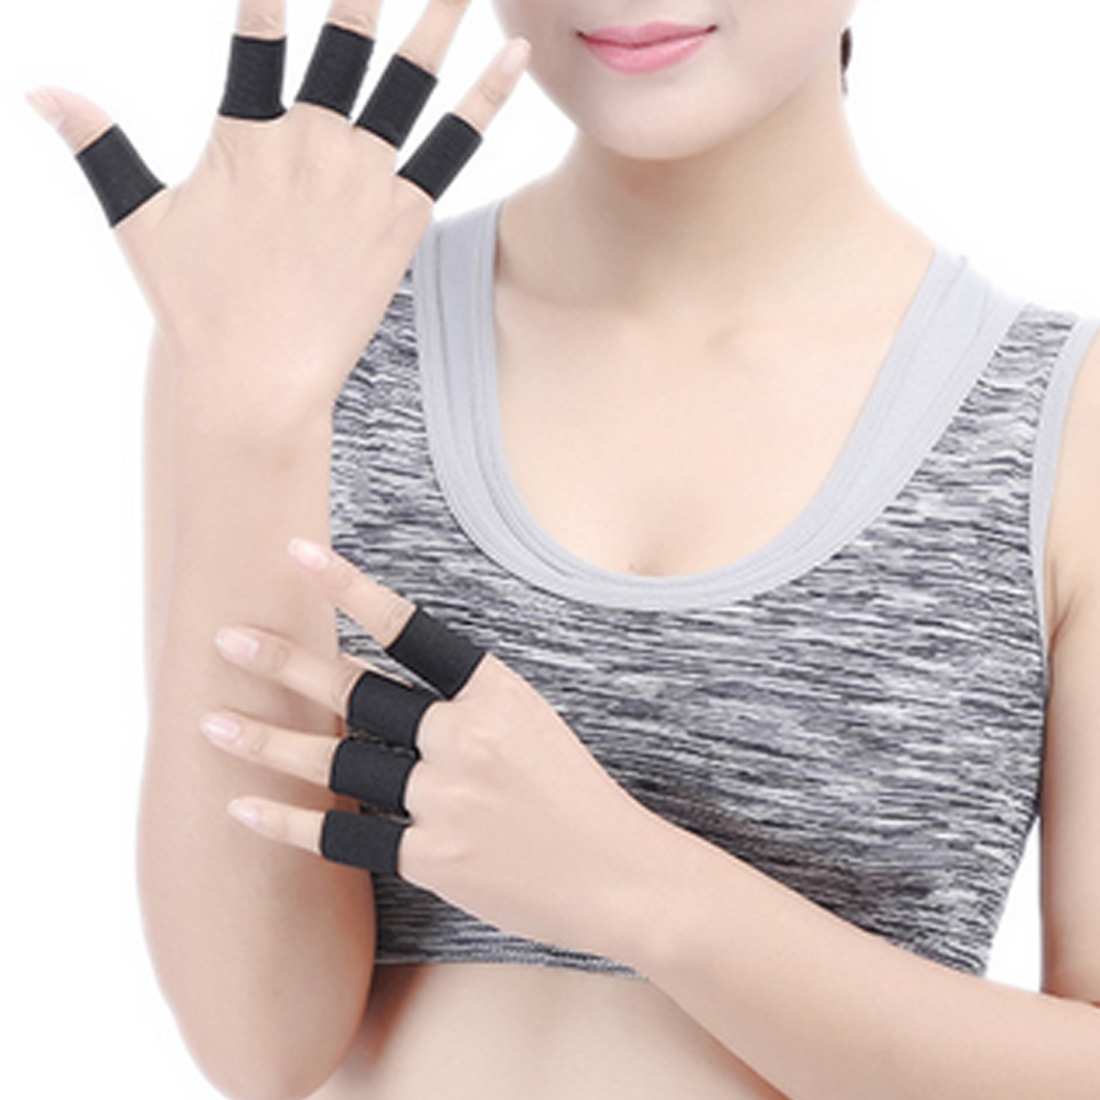 10Pcs Finger Protector Sleeve Support Basketball Sports  Arthritis Band Wraps Finger Sleeves